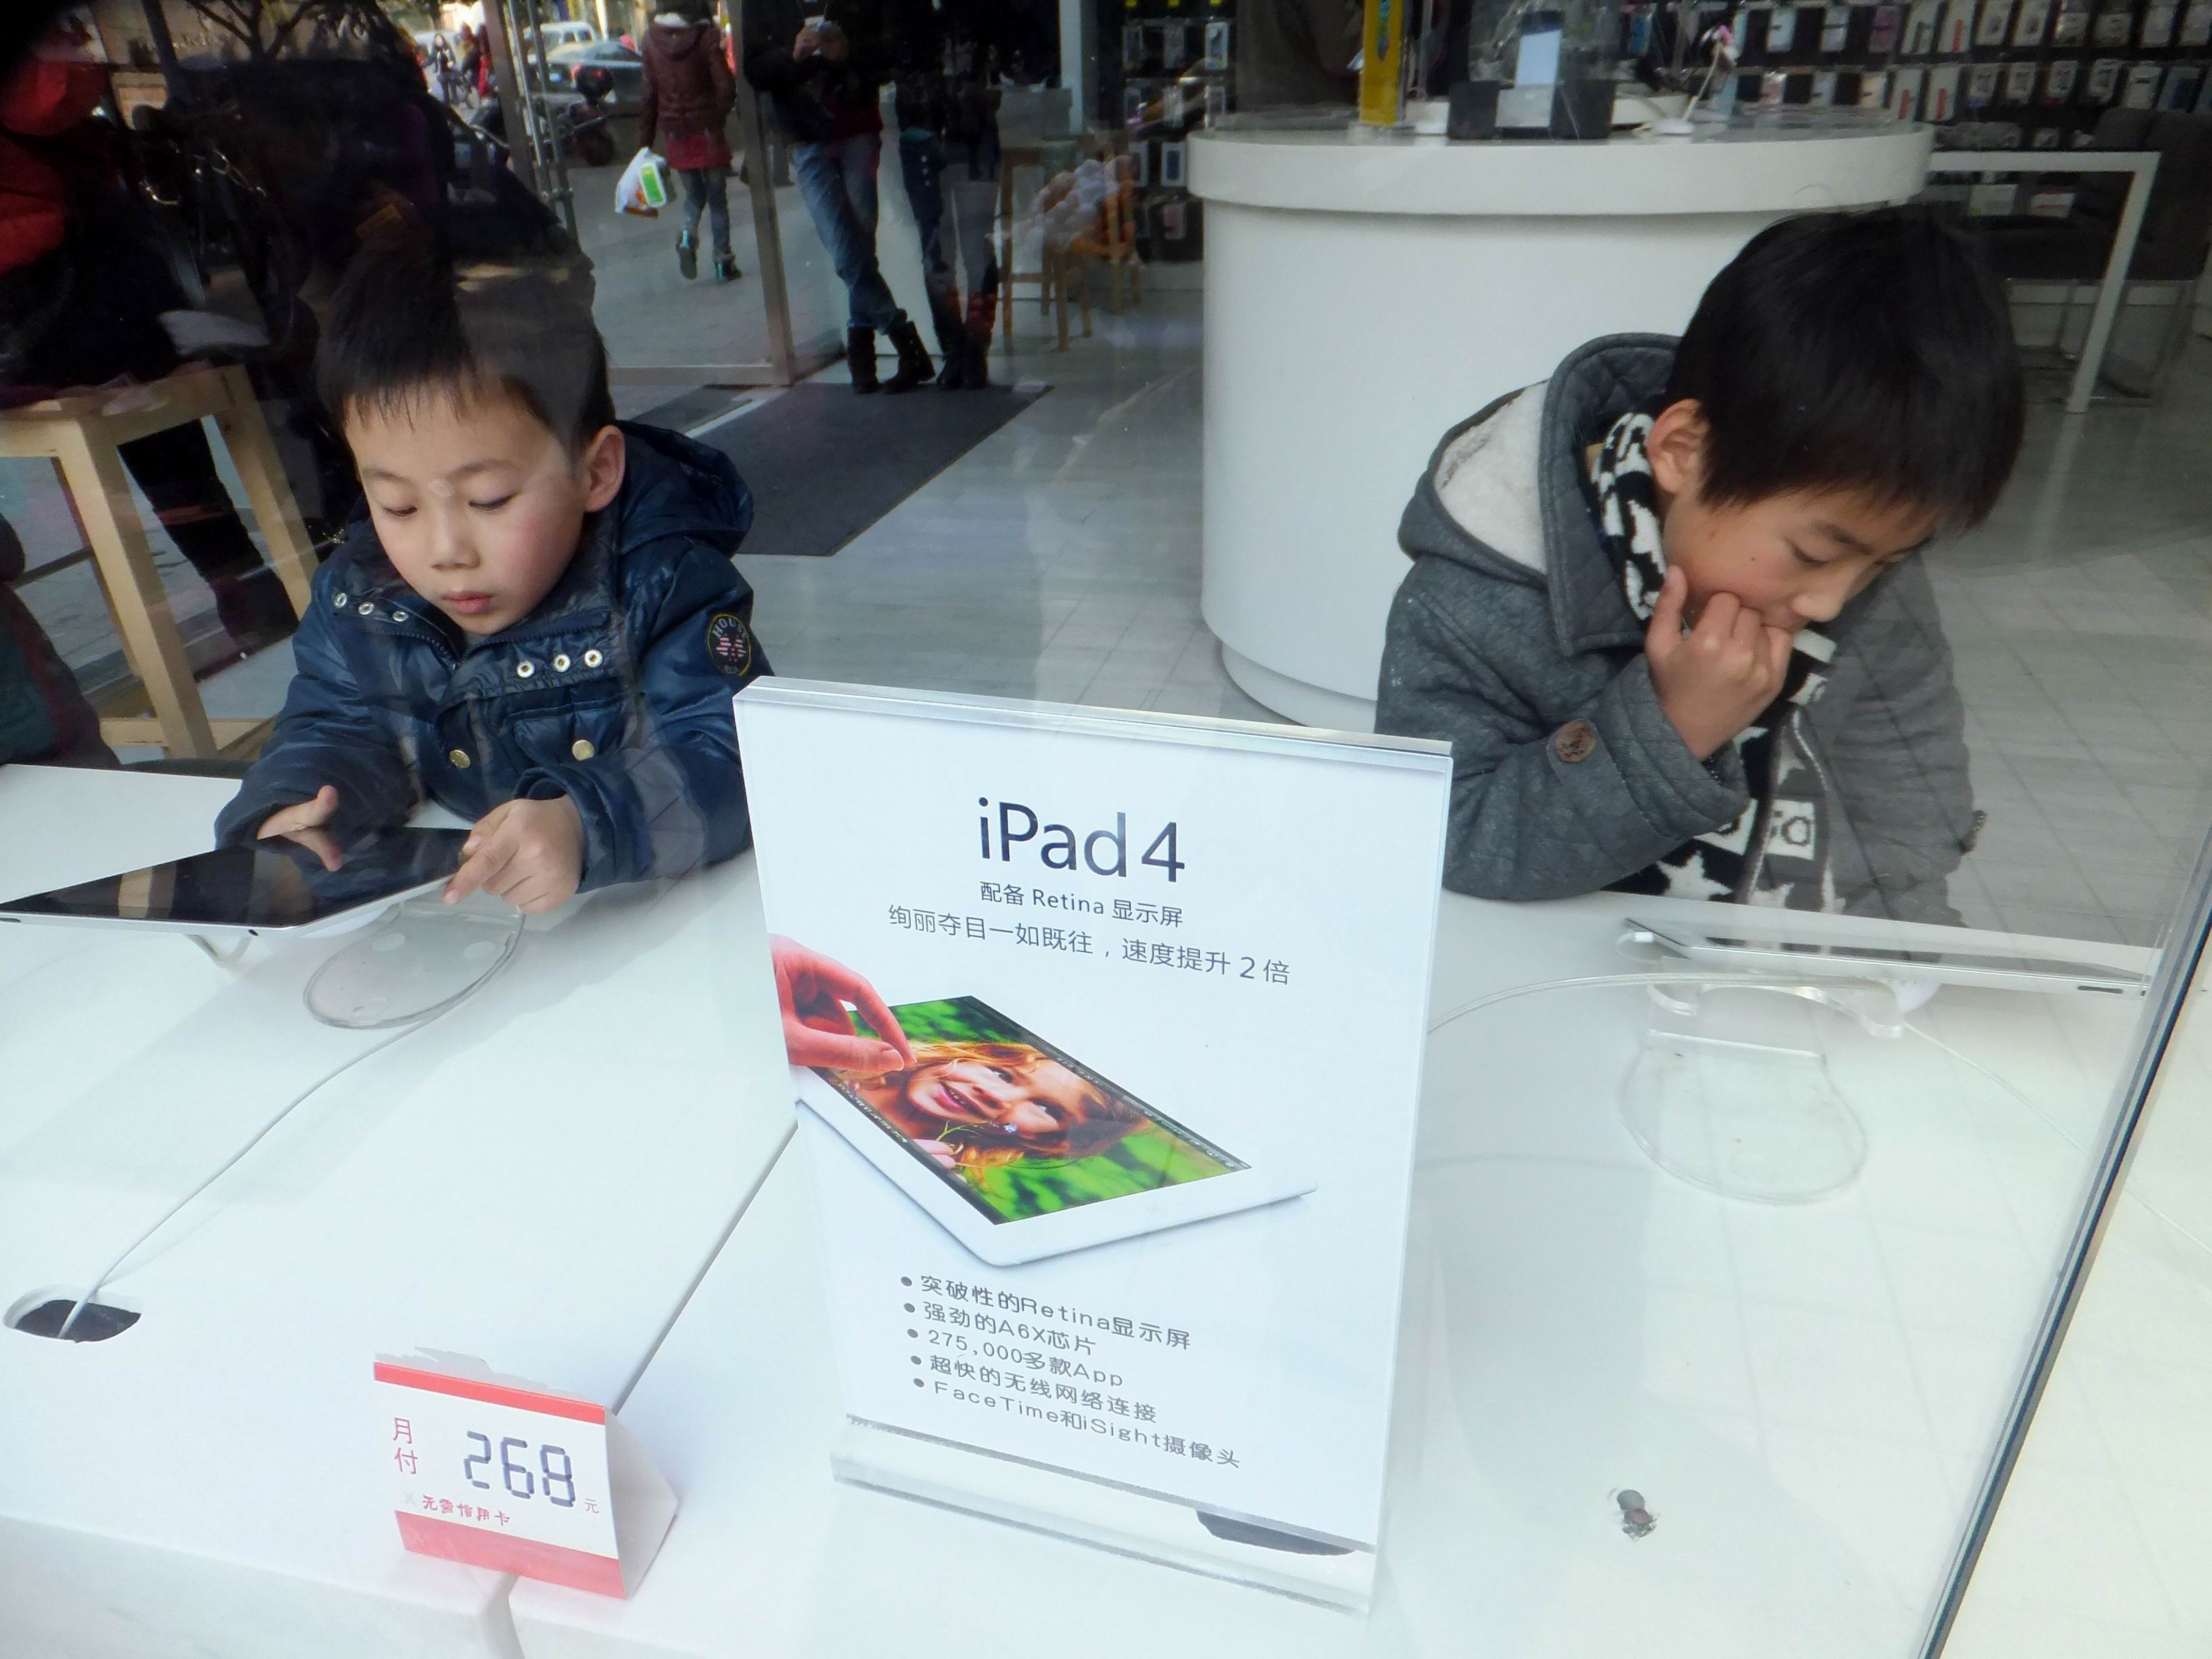 Young Chinese customers try out iPad 4 tablet computers at a branch of China Mobile in Chongqing, China, 31 December 2012.